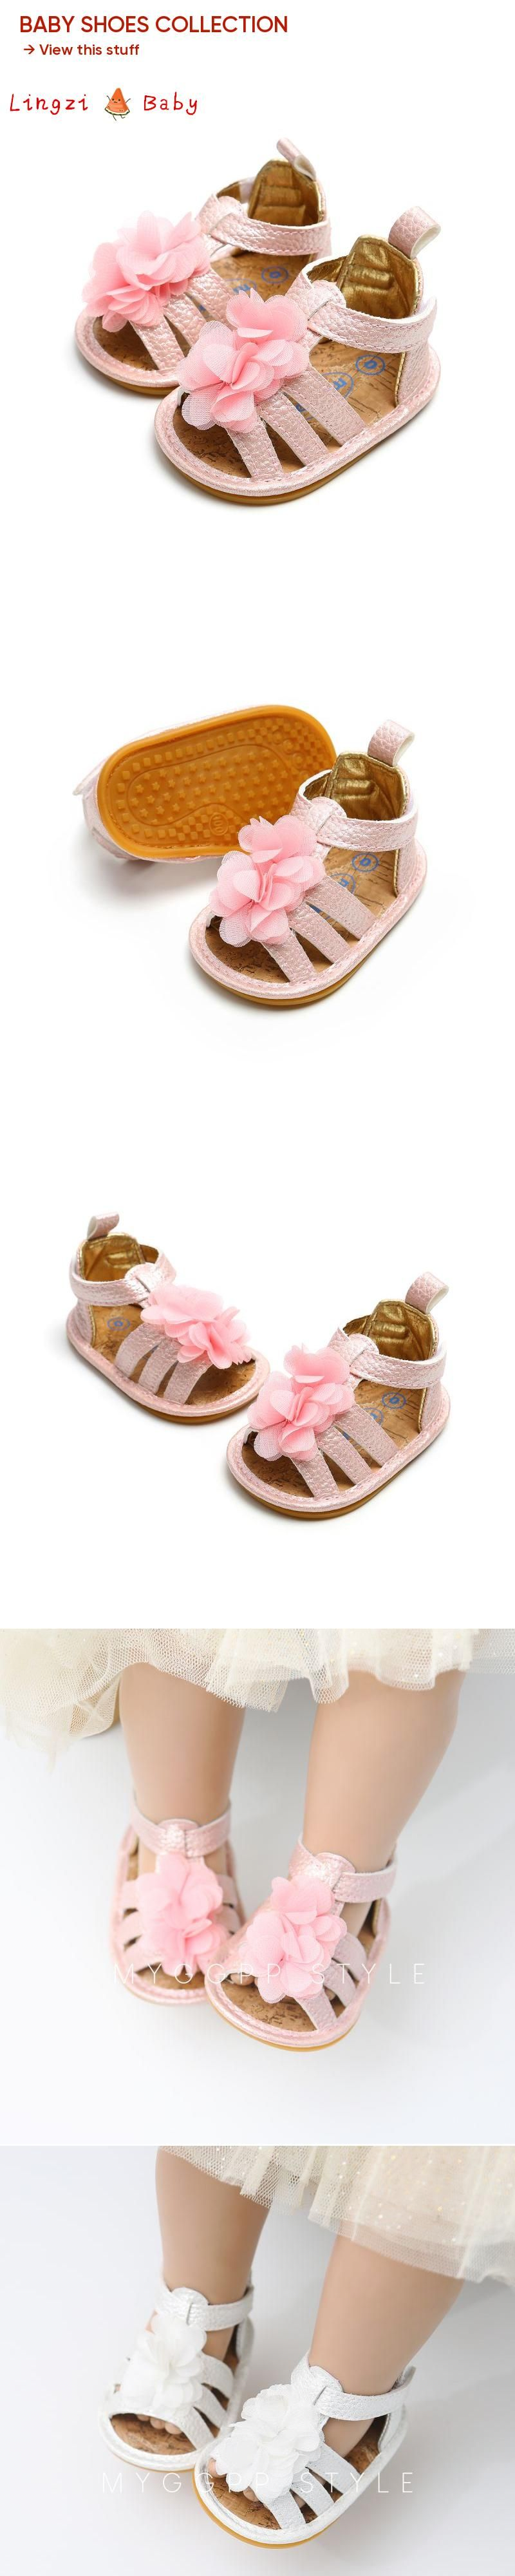 ff4249ea7 Flower Girl Shoes Newst Summer Baby Girl Sandals 0-18M Fashion Flowers Non- slip Newborn Baby Sandals Rome Style